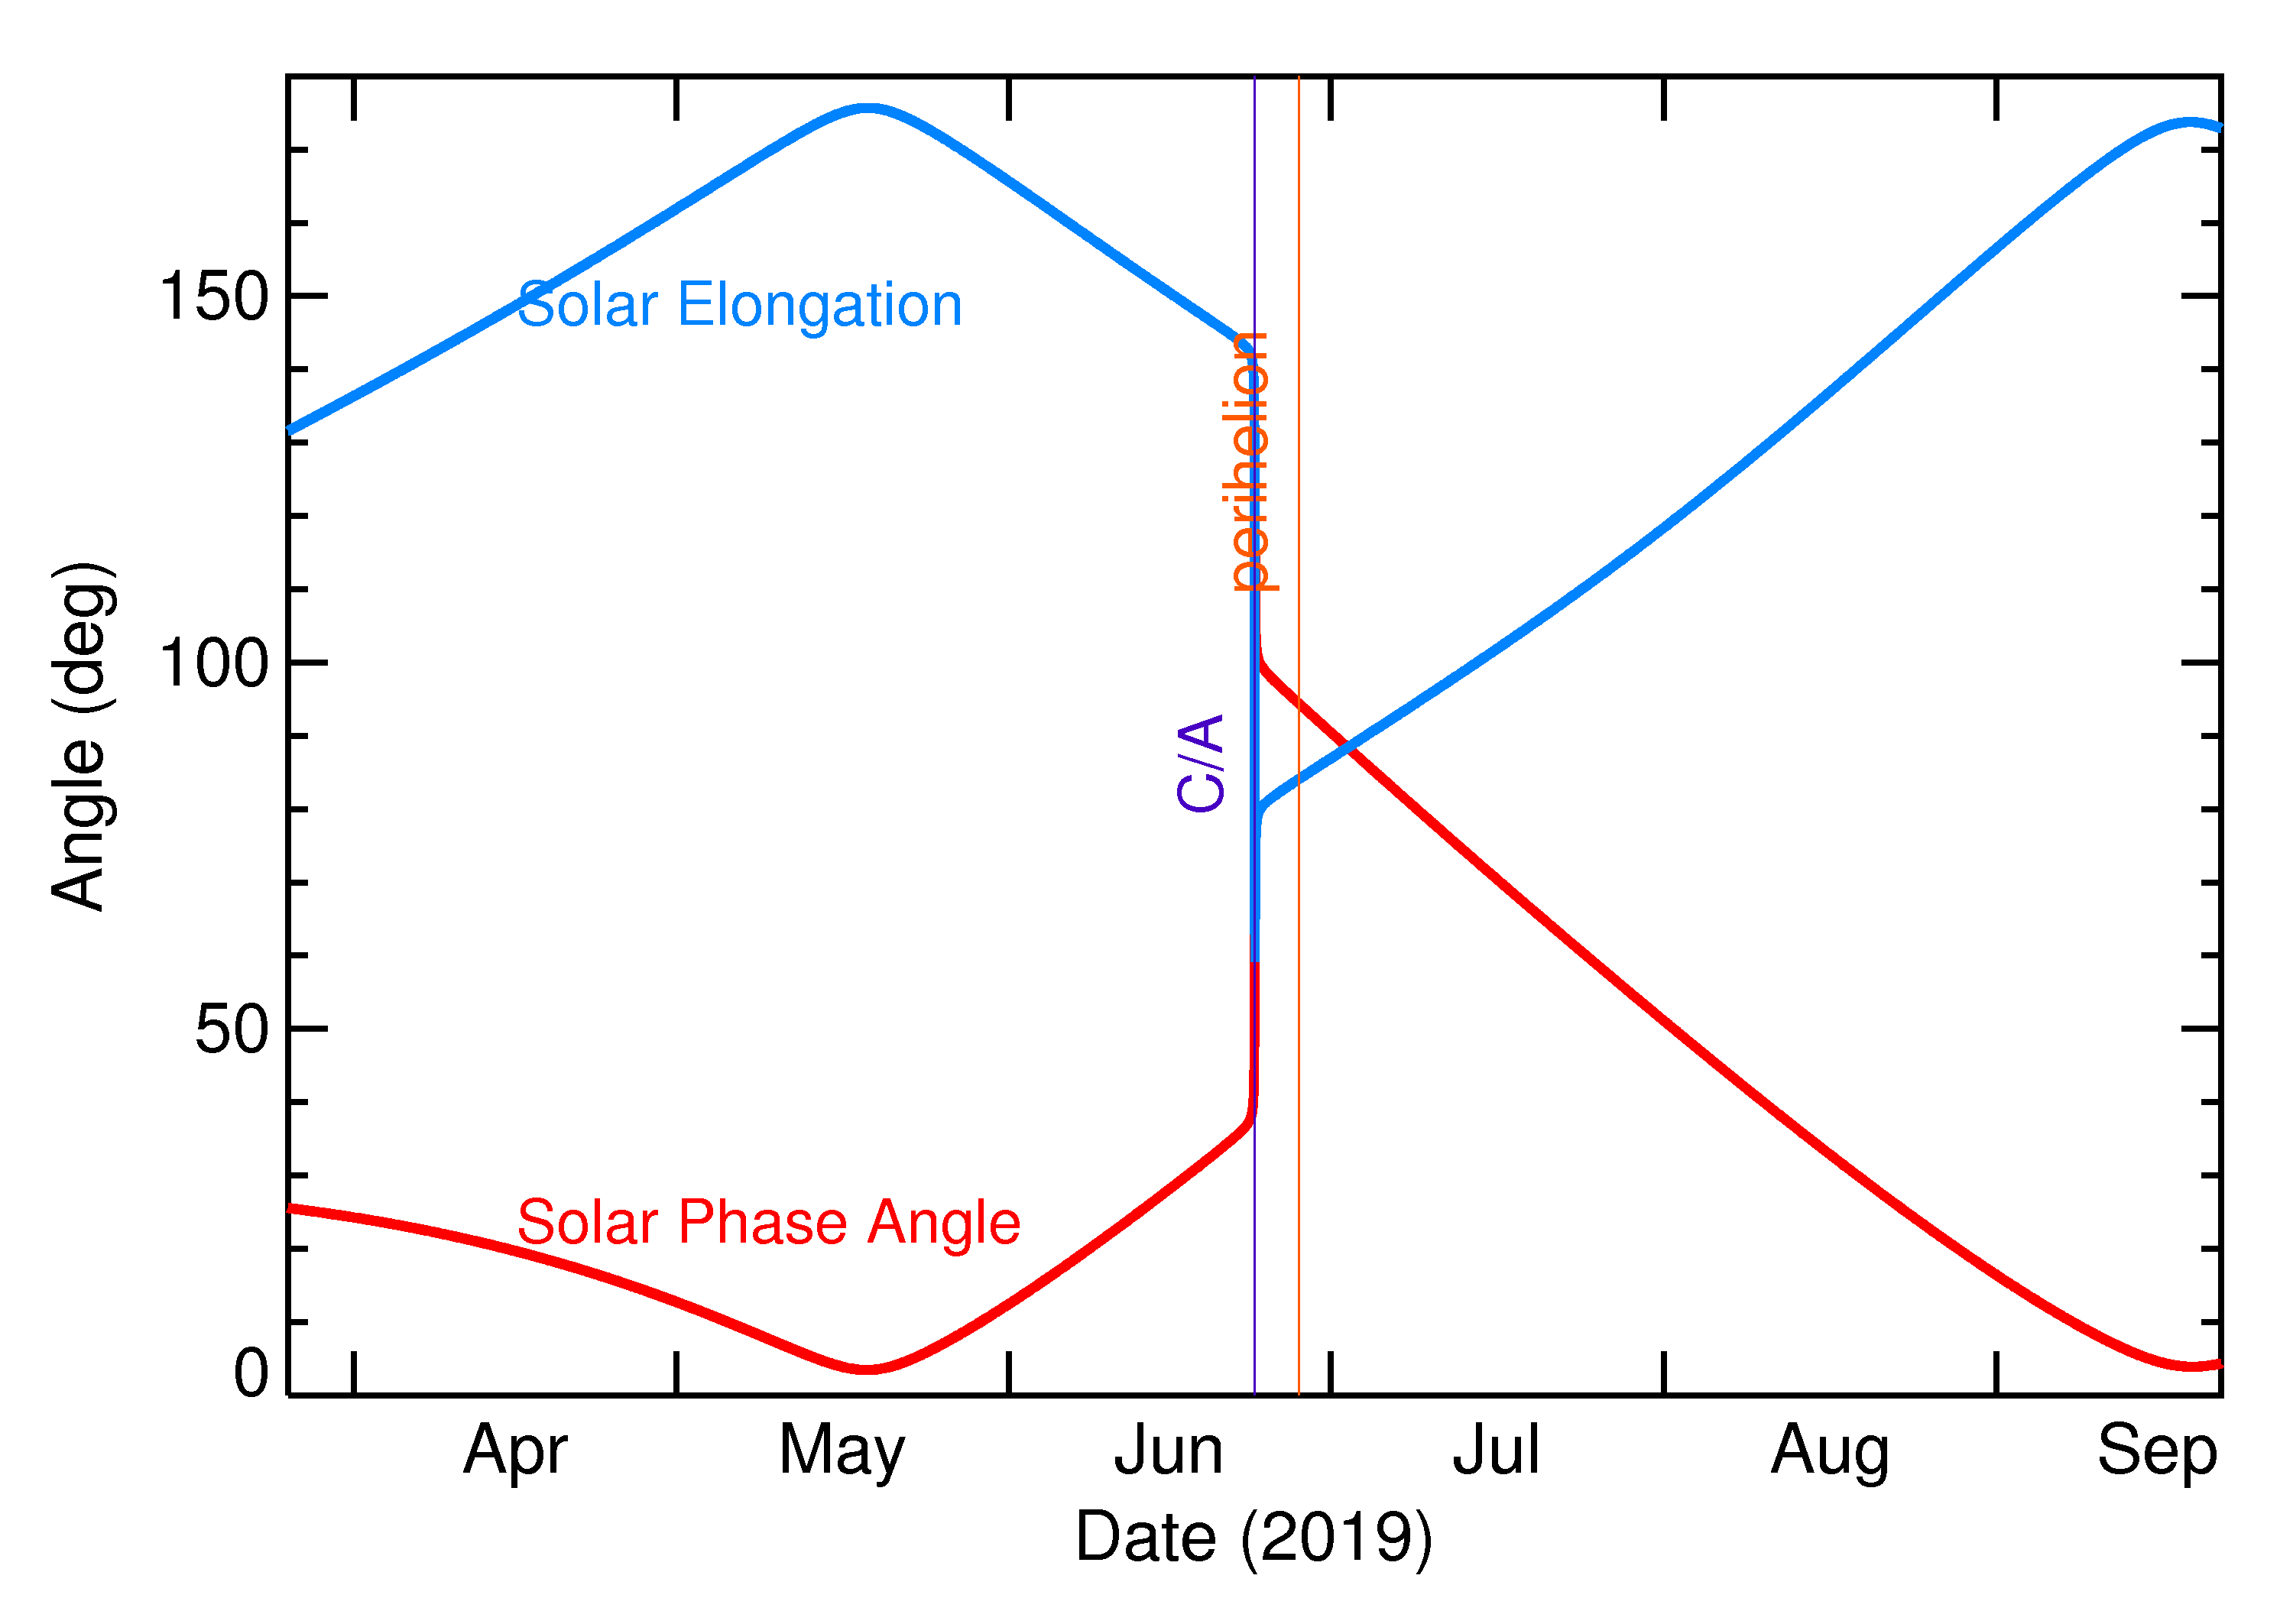 Solar Elongation and Solar Phase Angle of 2019 MO in the months around closest approach